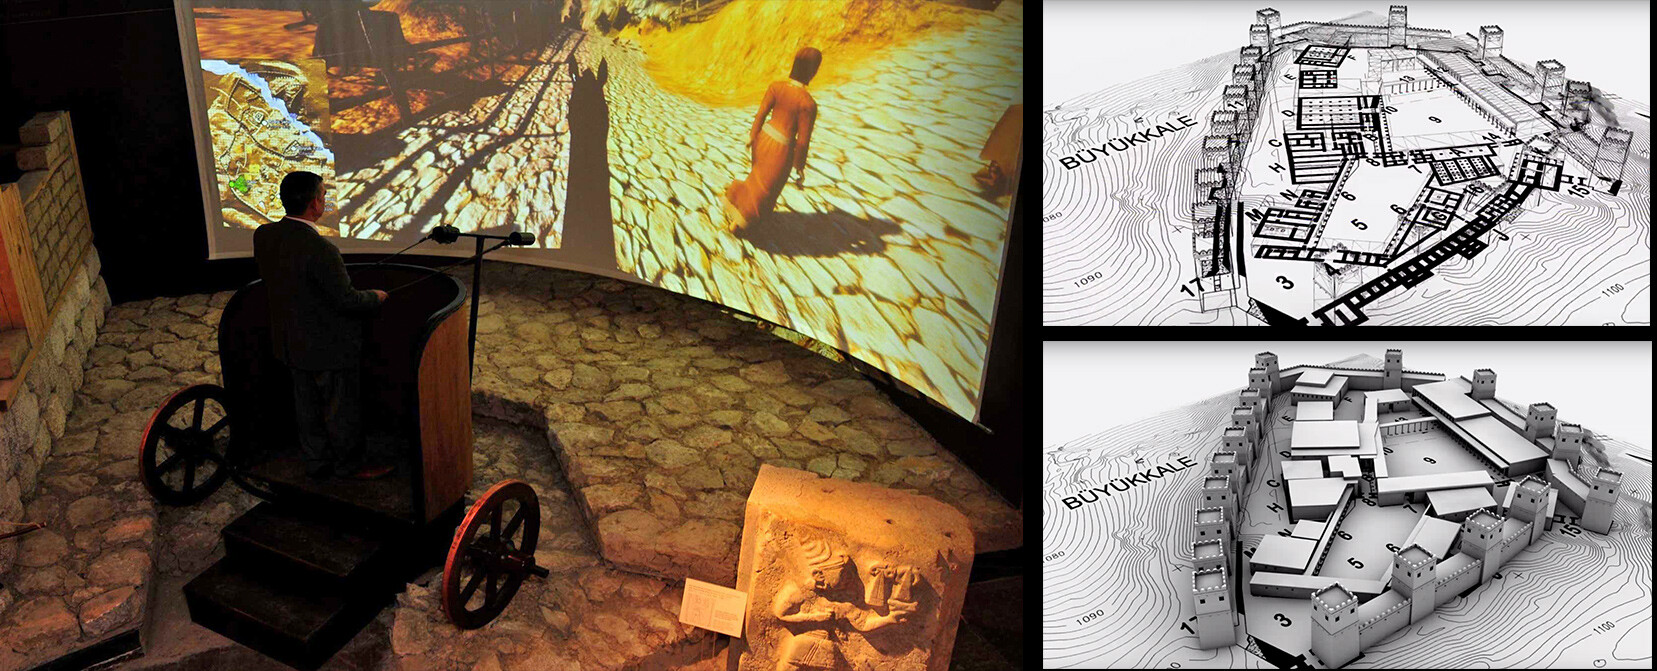 Virtual Hattusa Reconstruction & Chariot Simulator, Corum Archeology Museum,  2011, two projector, cylindrical screen, edge blending